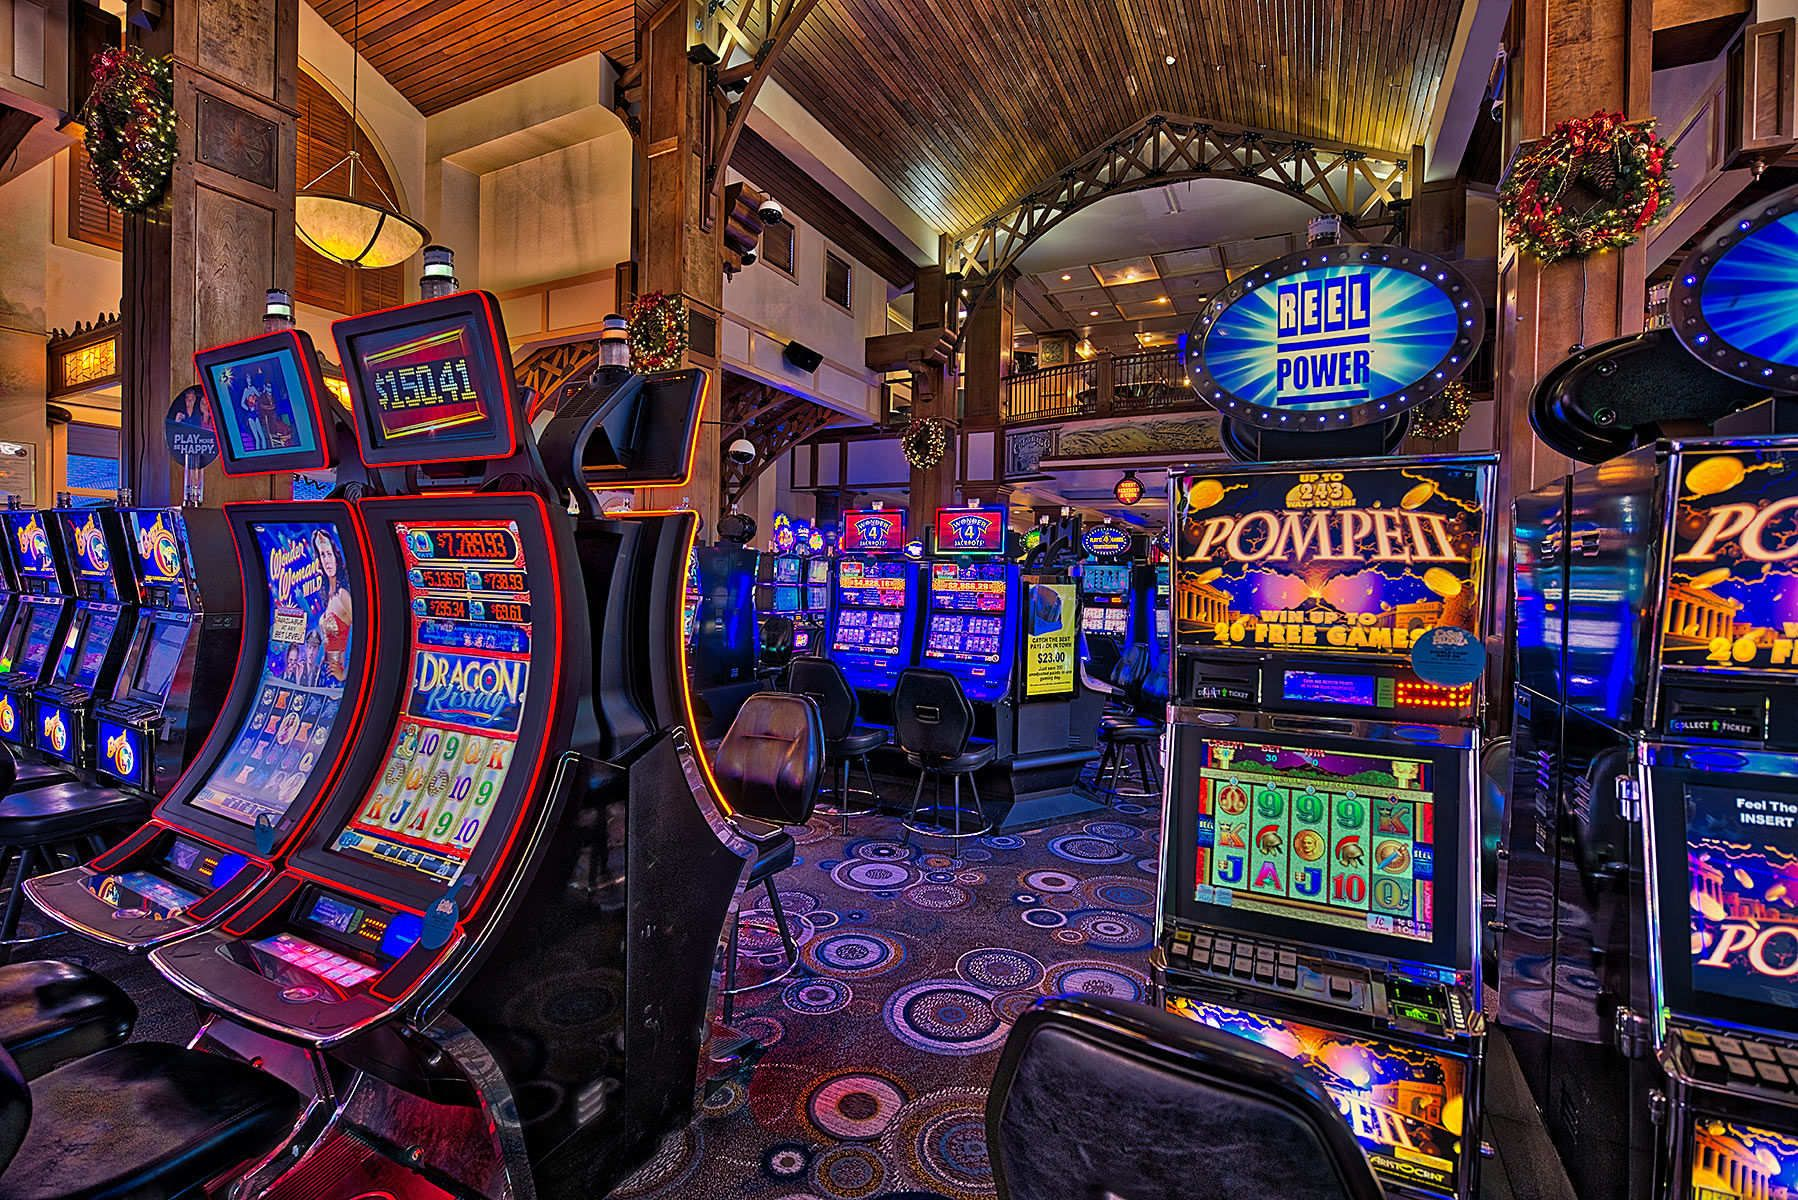 Slot Machines, photographed by Michigan architectural photographer Tony Segielski